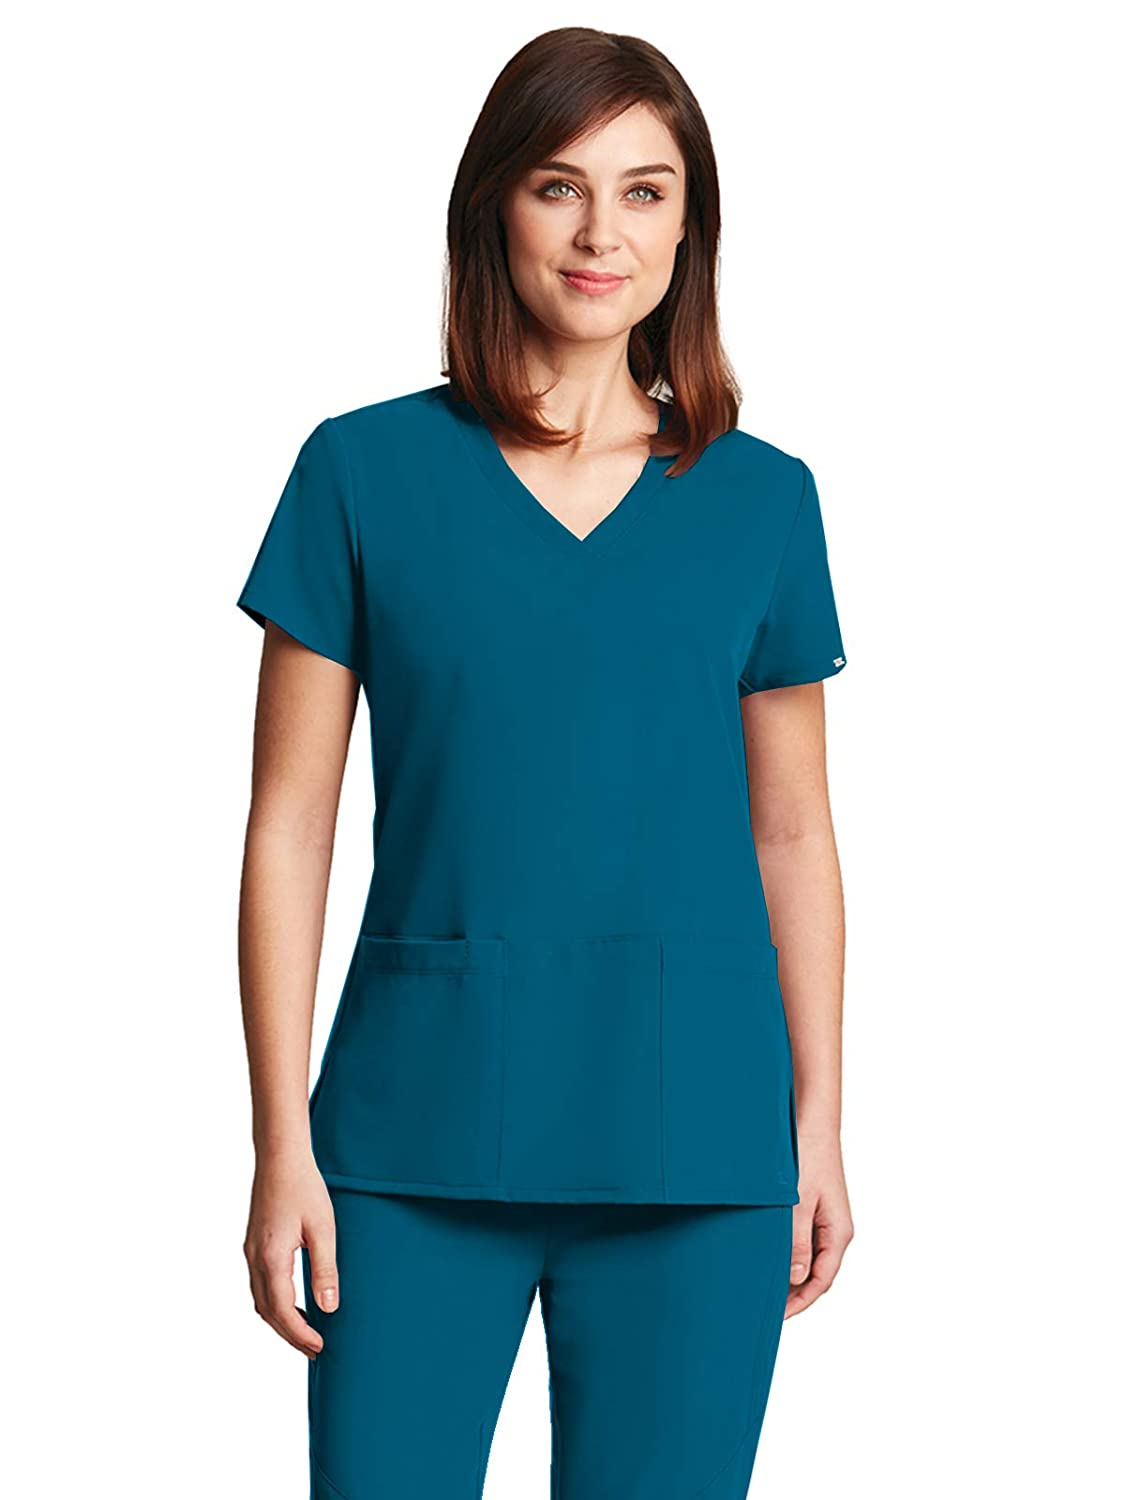 aac1a48237e Clean lines give the Signature Series by Grey\'s Anatomy Women\'s V-Neck  Scrub Top a polished look. Plenty of stretch and a hidden cell phone offer  the ...